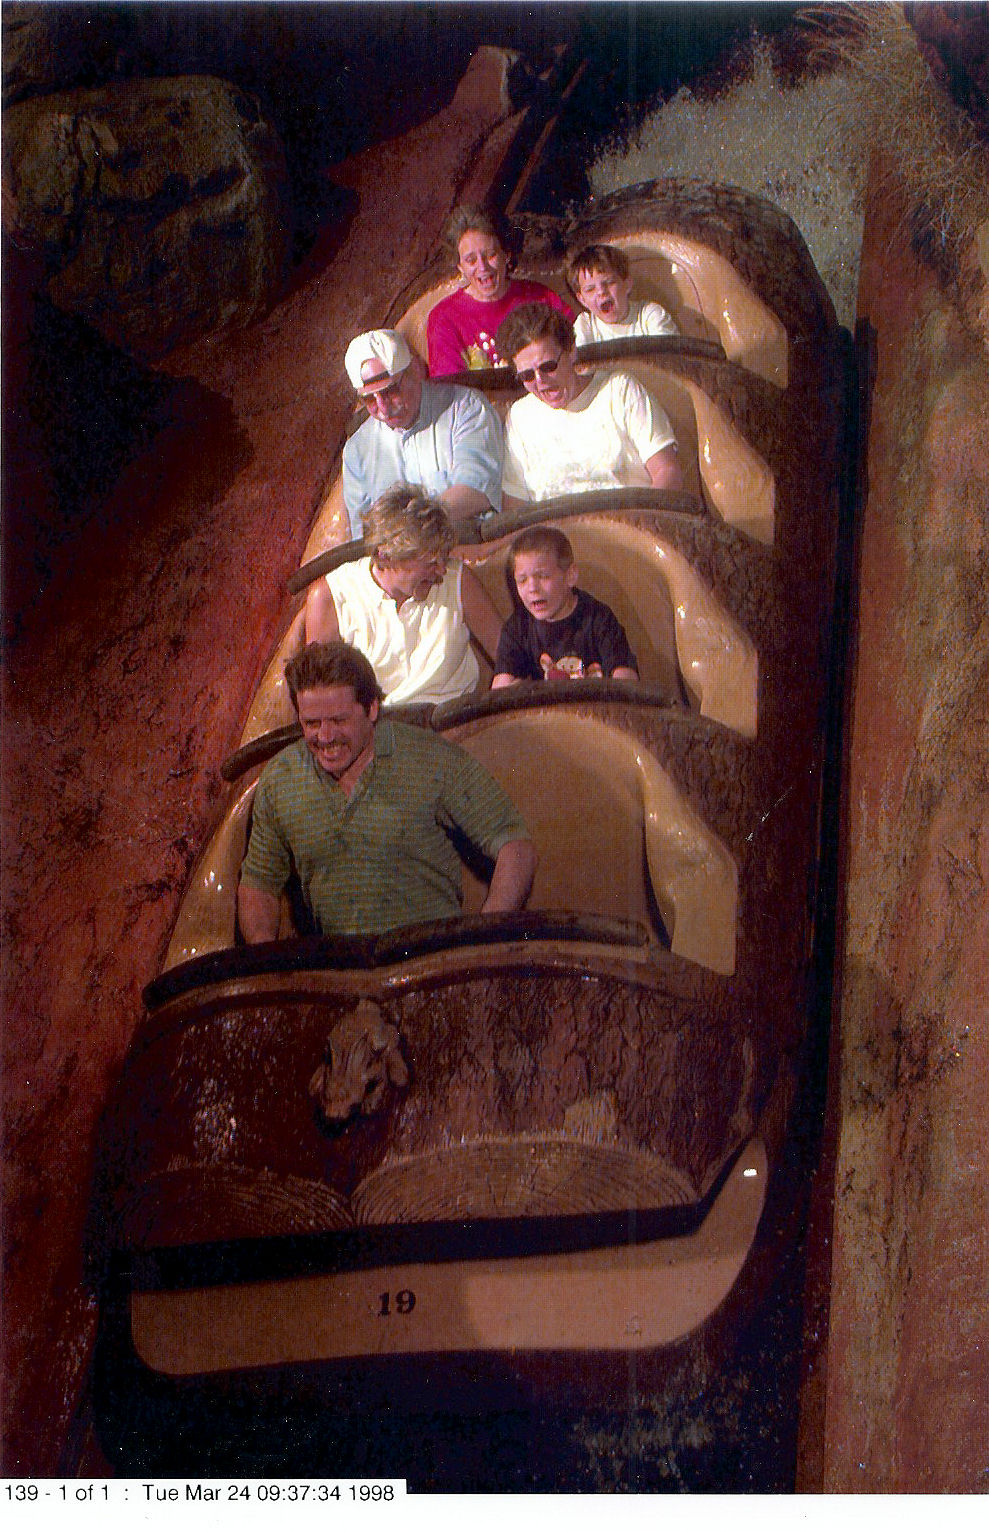 Me and my mom, (in the back row), on Splash Mountain at The Magic Kingdom at Disney World.